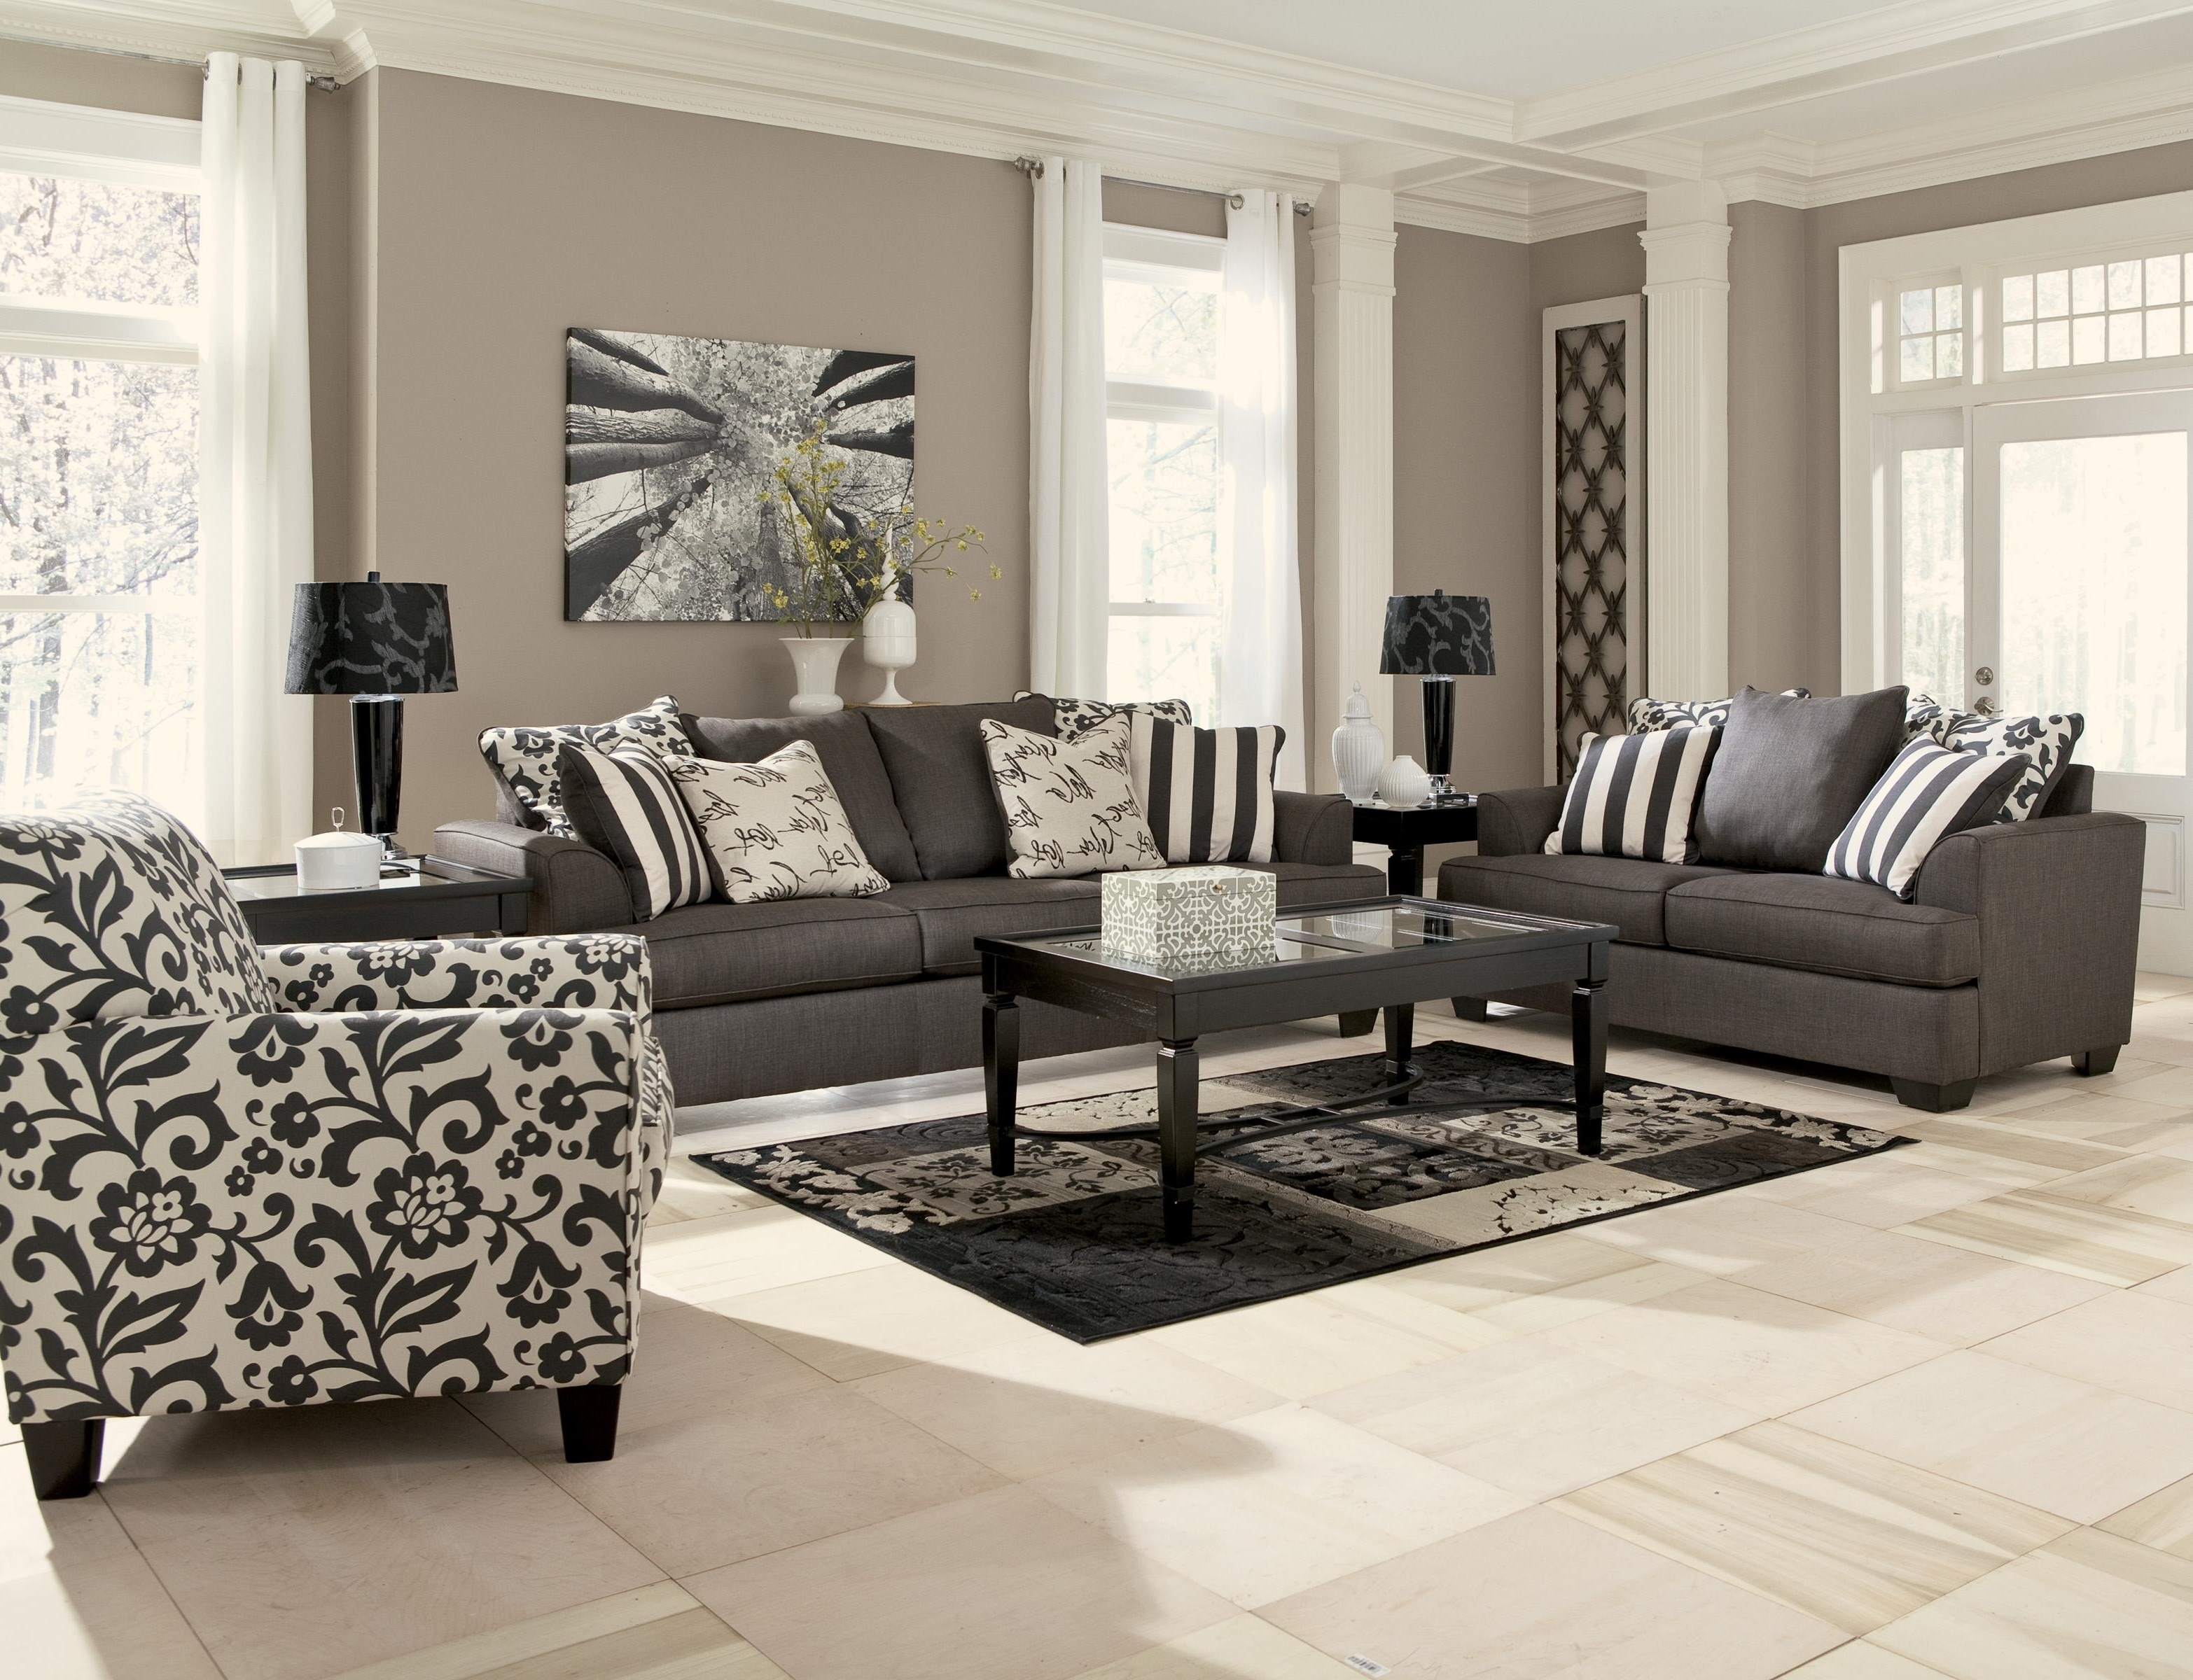 2018 Jordans Sectional Sofas Within Sofar Worcester Furniture Stores In Ma Jordans Sectional Sofas (View 5 of 20)